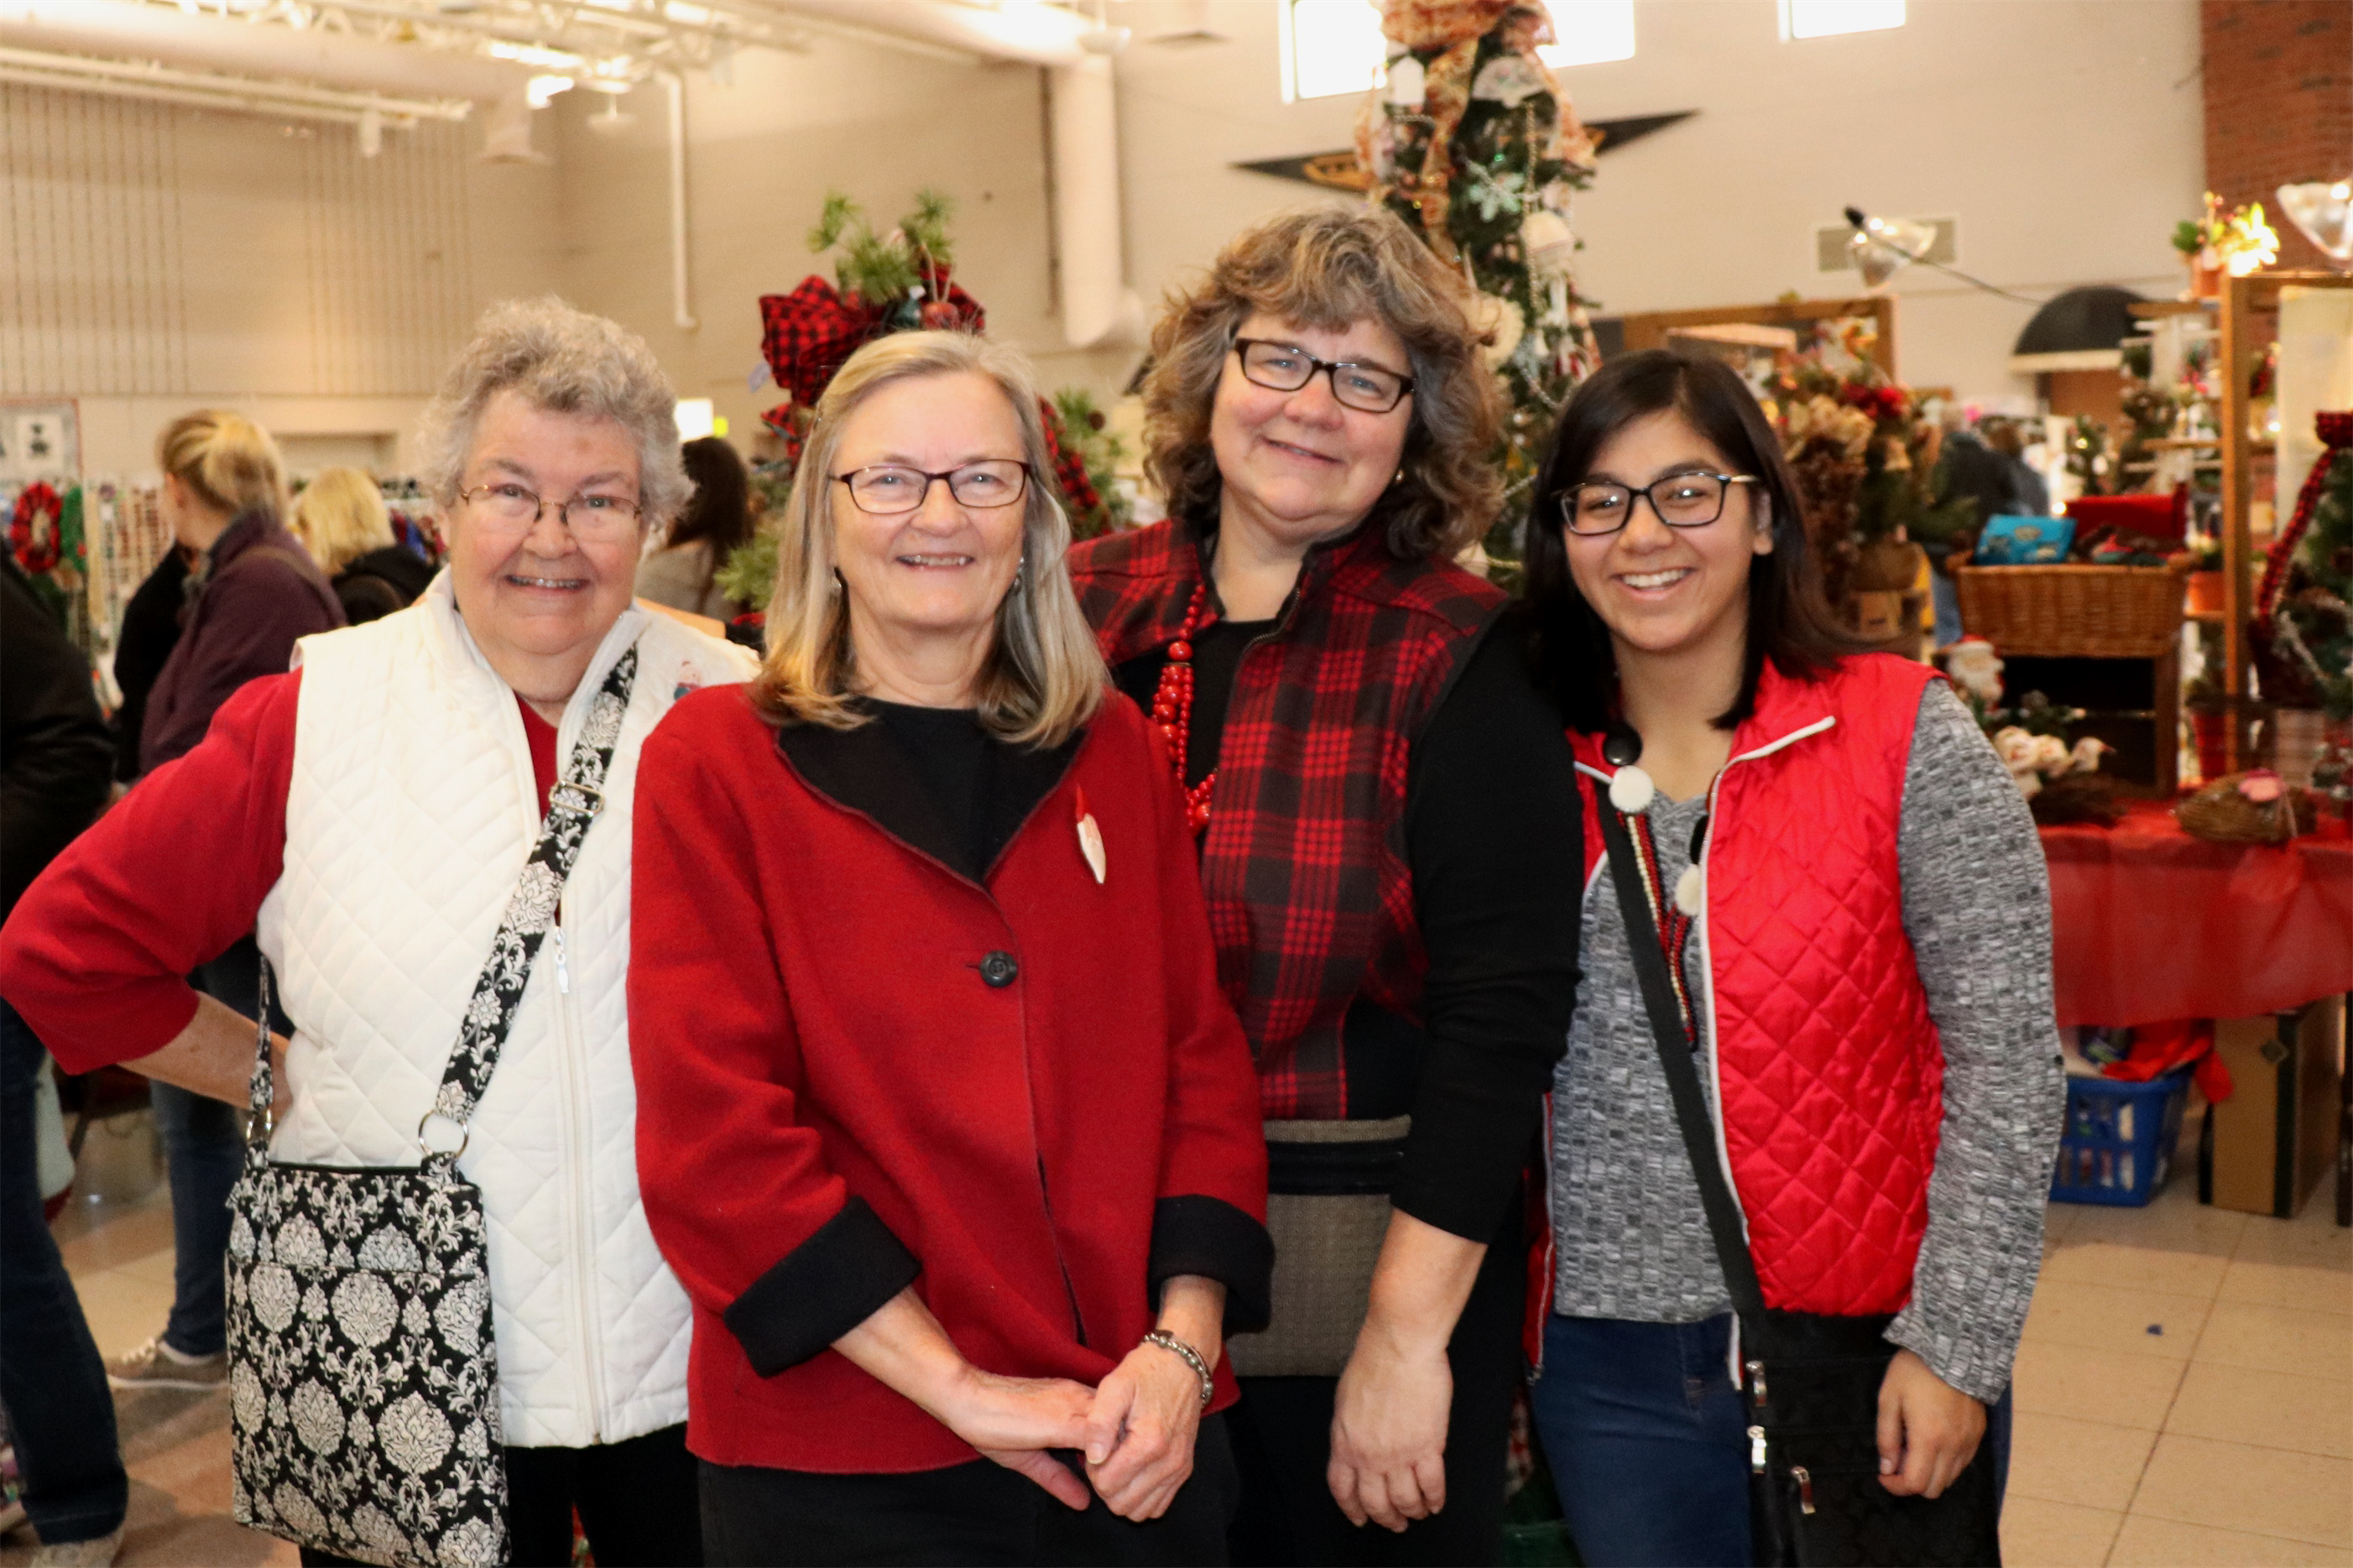 Bonnie, Marie, Kirsten and Marie share time together at the Christmas Gift and Craft Show in Minocqua. The women, who represent three generations, make and sell their crafts locally. Kim Johnson photo